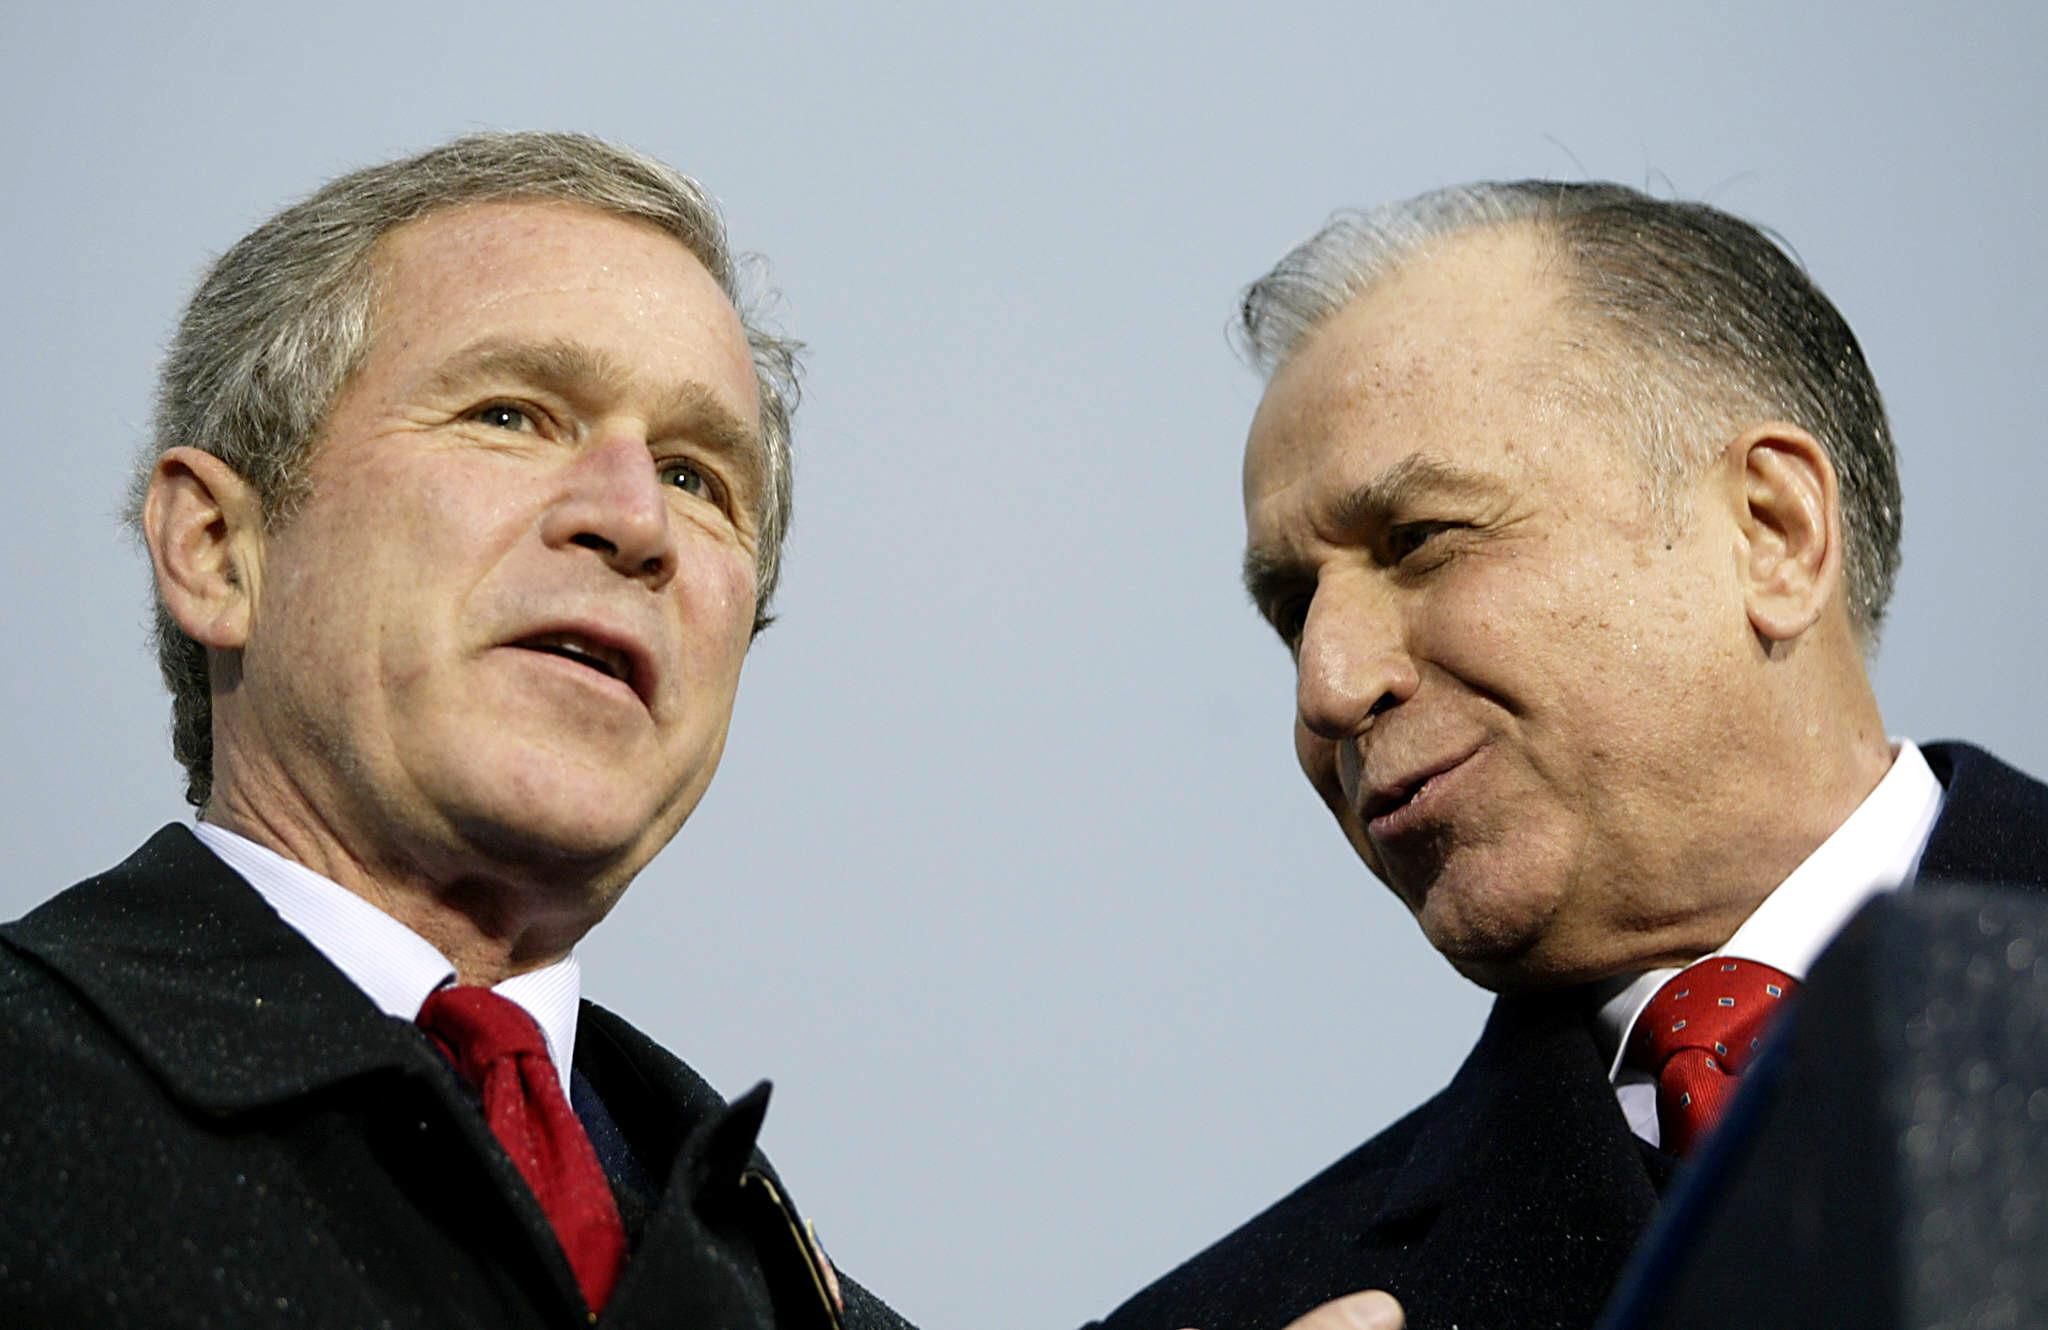 BUCHAREST, ROMANIA: US President George W. Bush (L) speaks with Romanian Prtesident Ion Iliescu at a rally at the Piata Revolutiei n Bucharest 23 November 2002. Bush attended a two-day NATO summit in Prague in the Czech Republic 21 and 22 November where NATO voted to expand and include Romania. AFP Photo/Stephen JAFFE (Photo credit should read STEPHEN JAFFE/AFP/Getty Images)